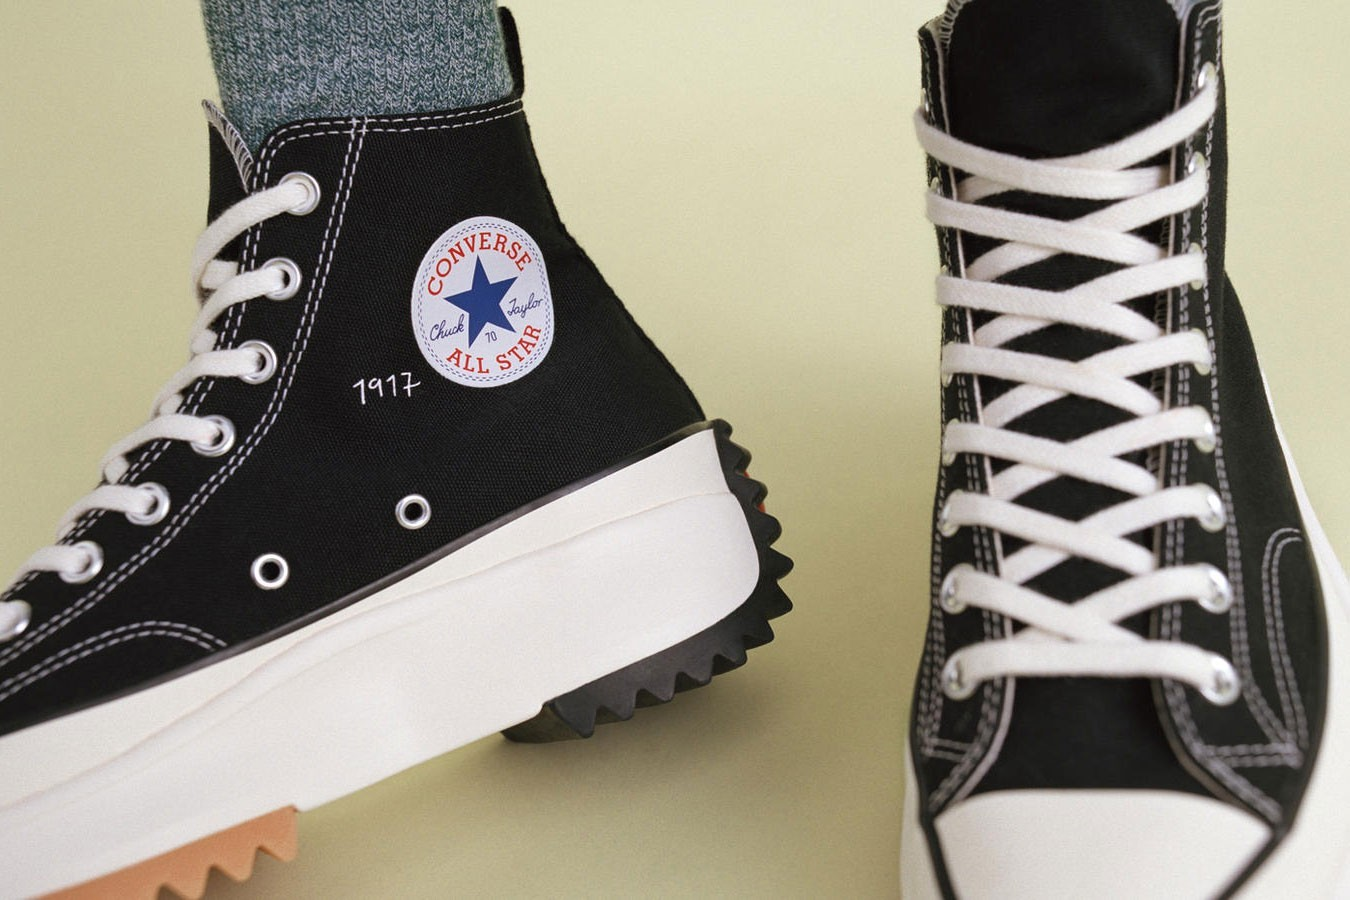 JW Anderson Converse Run Star Hike Sneaker Sneakers Spring Summer 2019 SS19 Black White Collaboration Platform